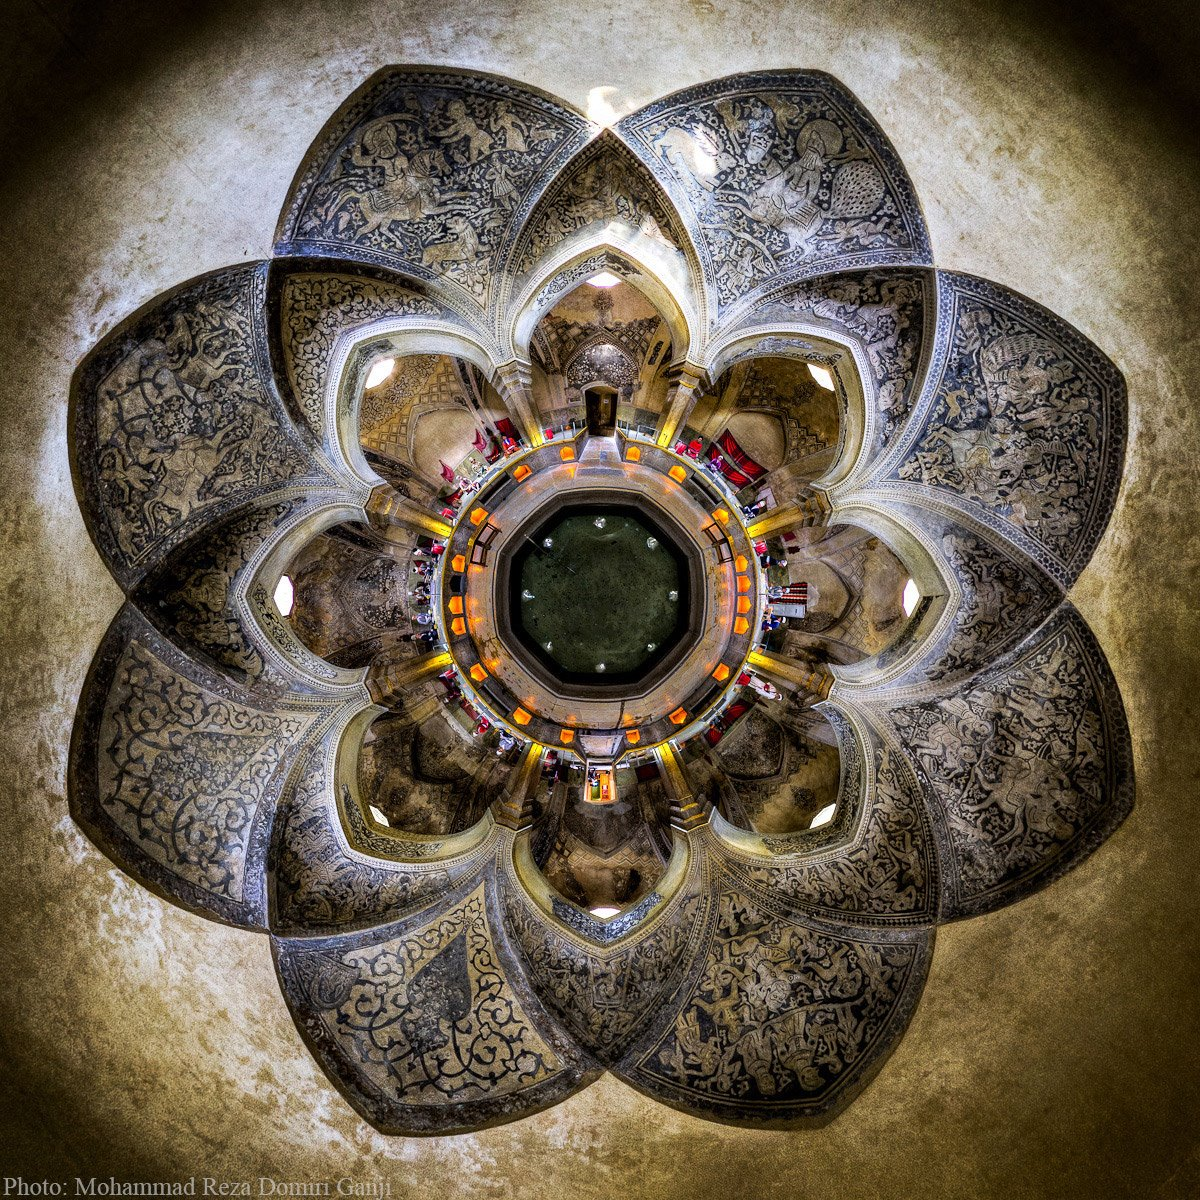 Kaleidoscope Views of the Middle East's Mosques: JuxtapozMosque02.jpg